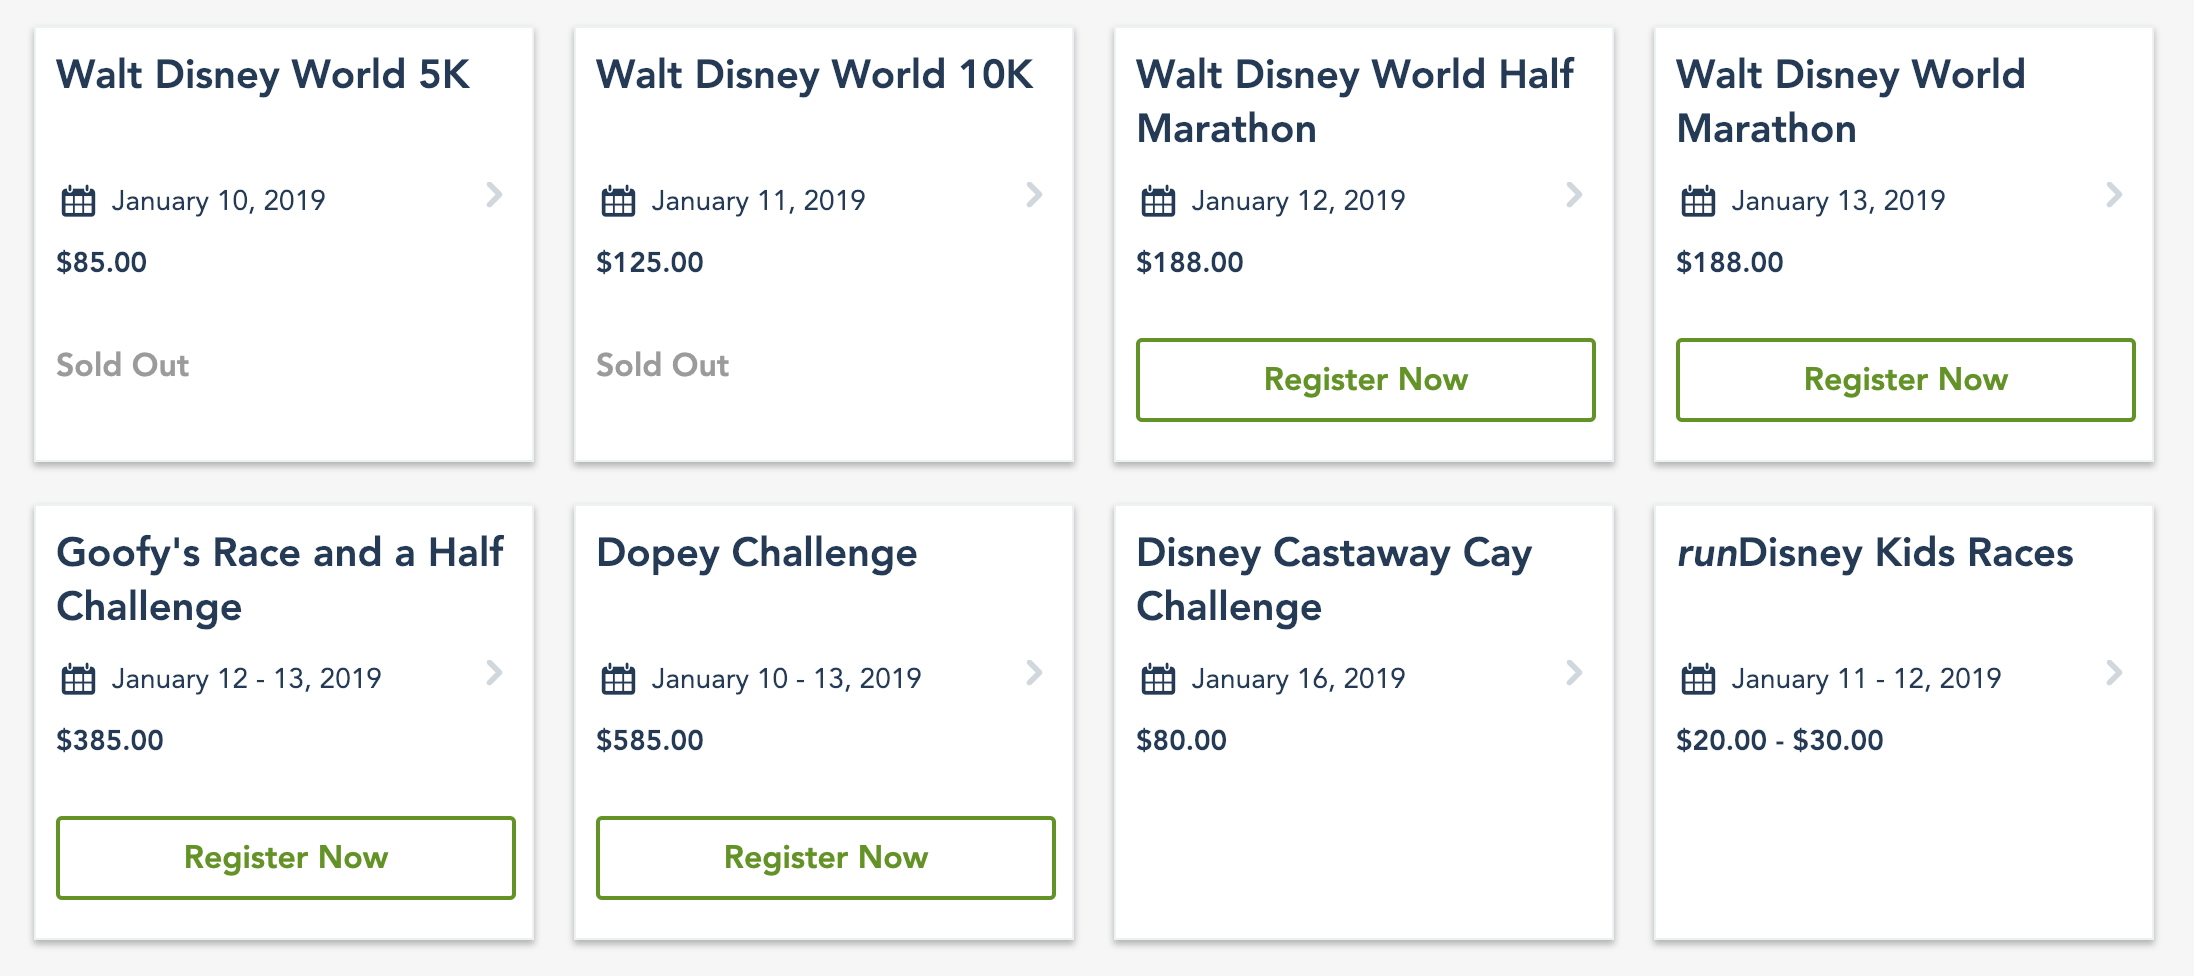 rundisney+disney+world+half+marathon+prices